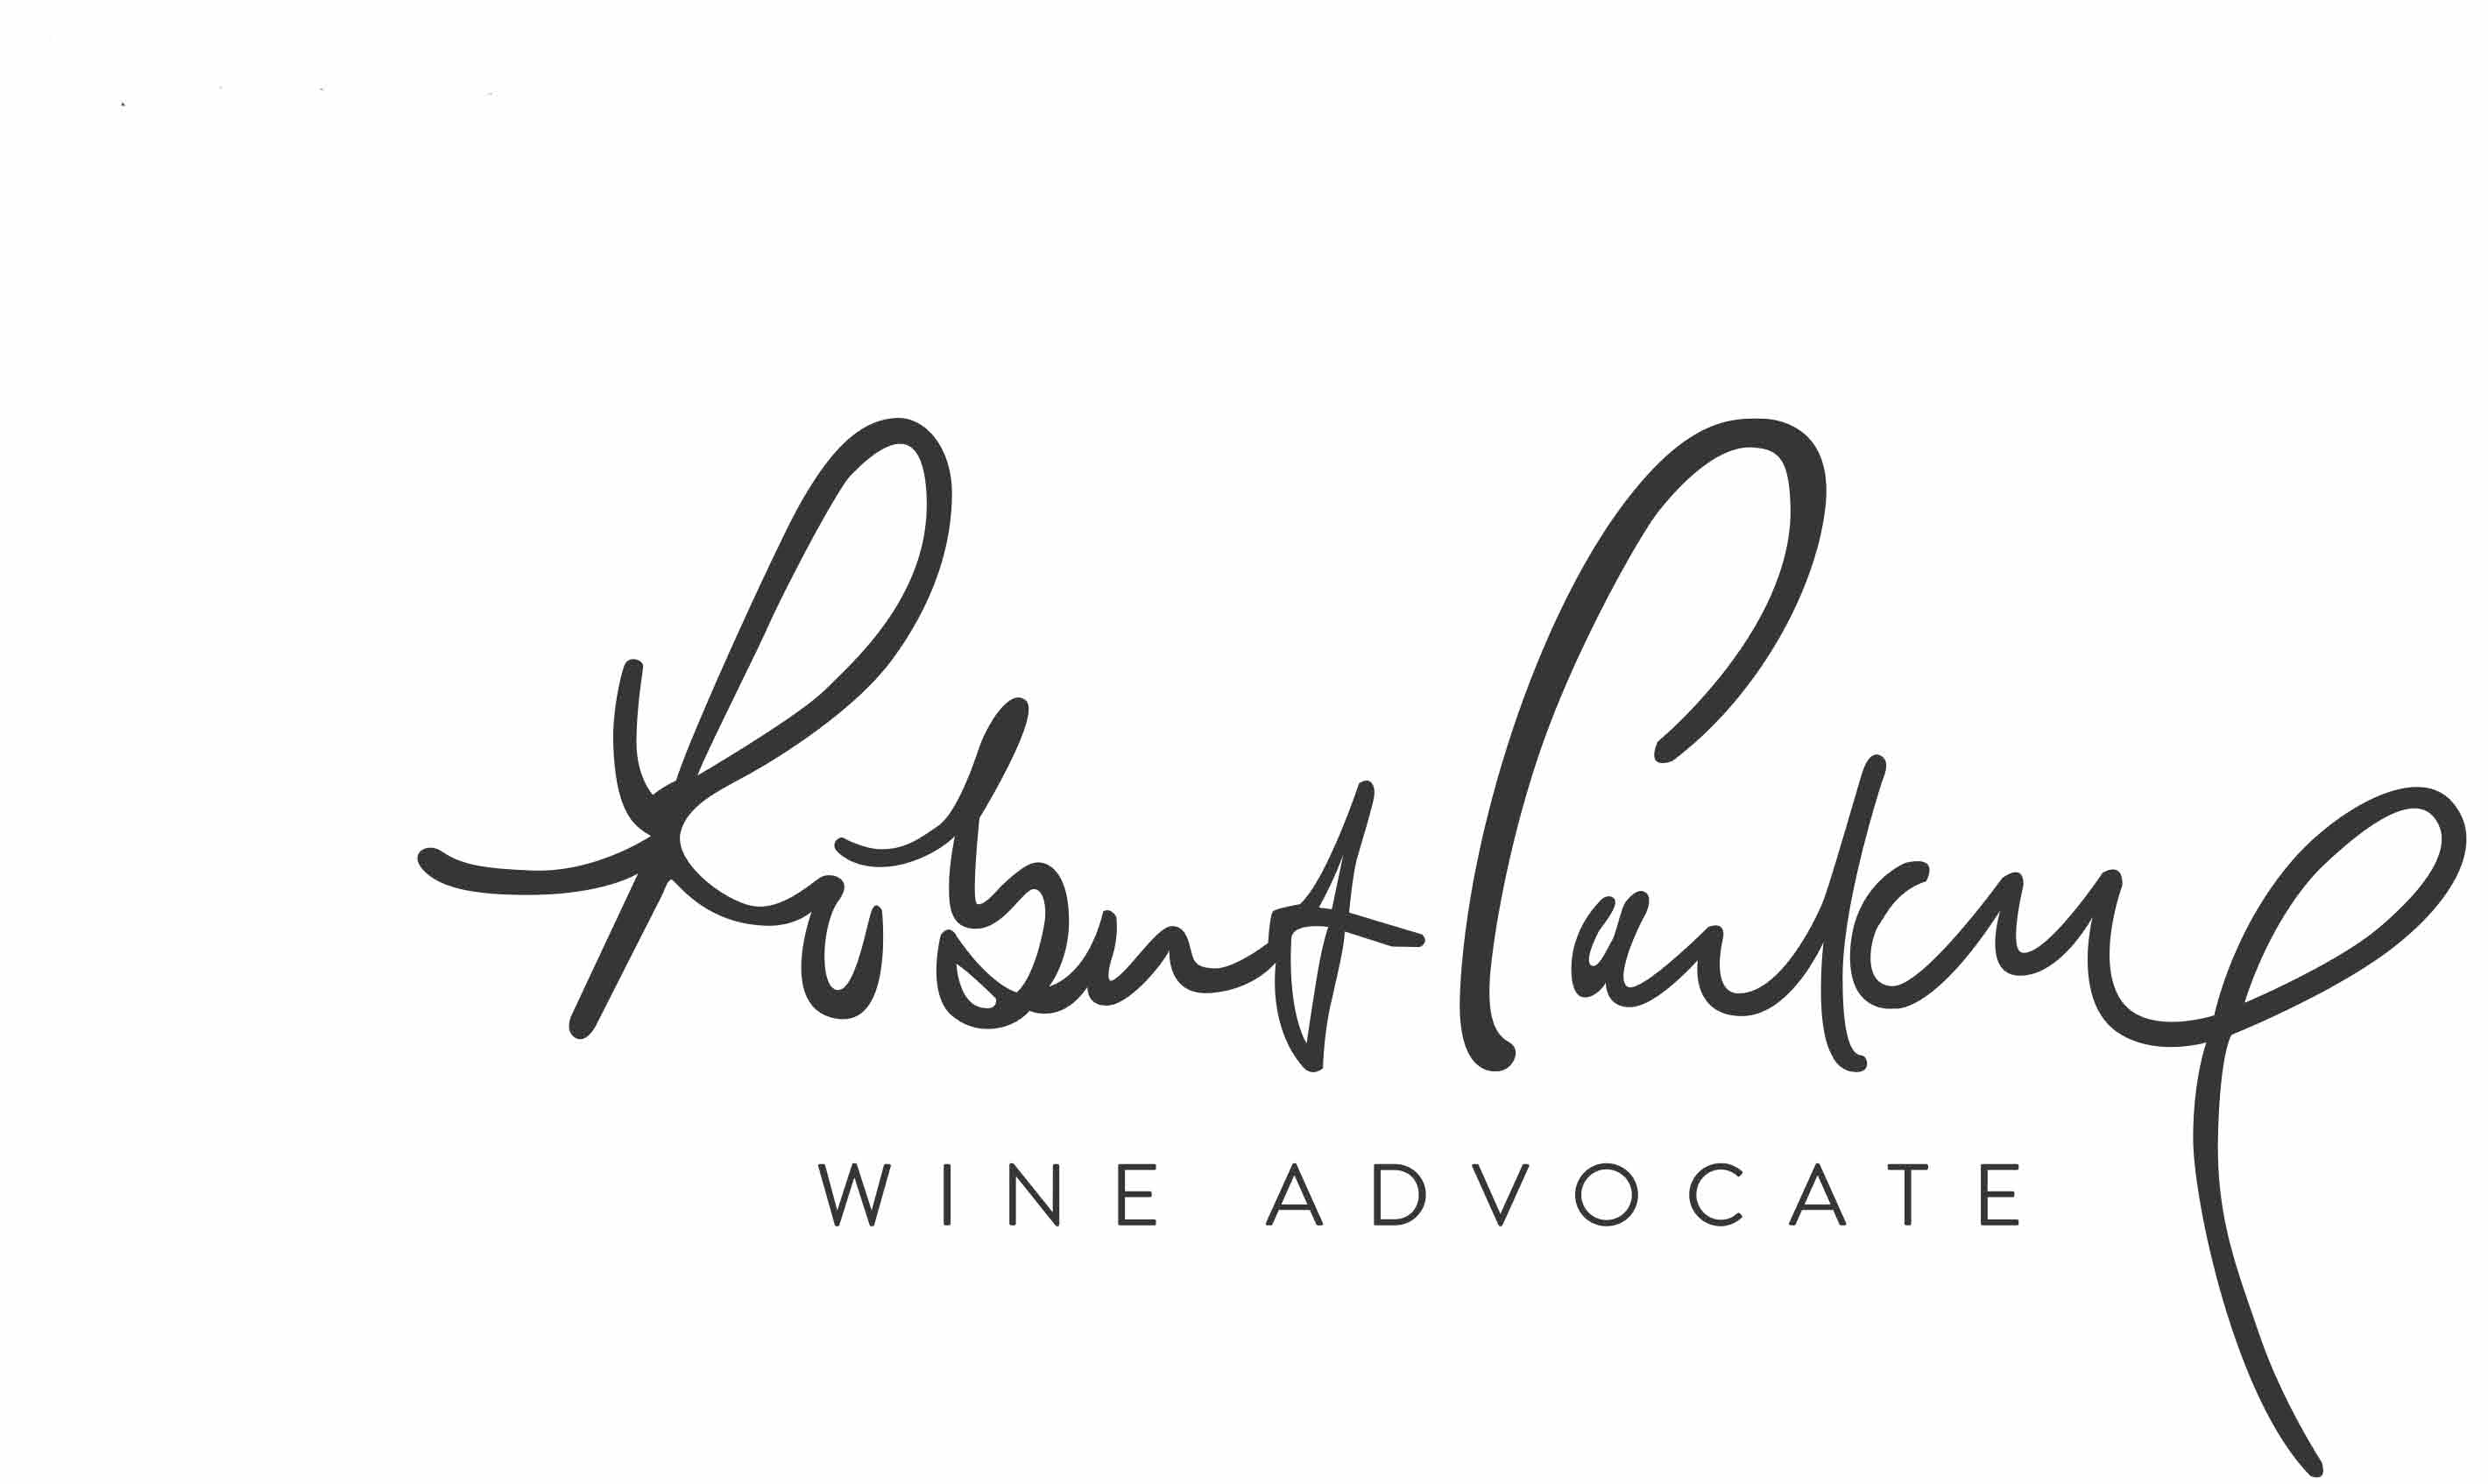 """Lanari is another Marche producer making delicious wines."" – The Wine Advocate"